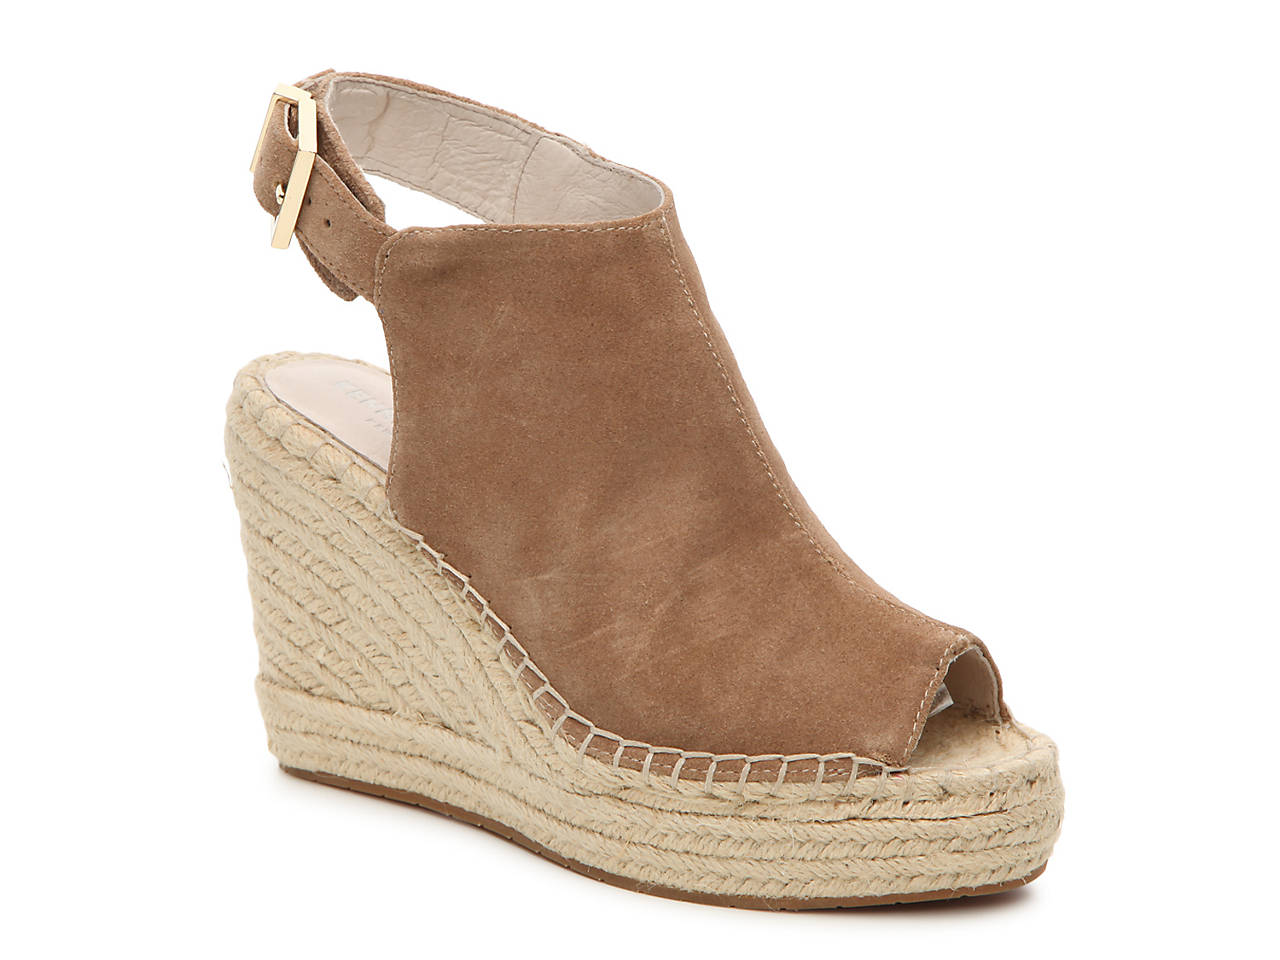 c0c9ddf435d Kenneth Cole New York Olivia Suede Wedge Sandal Women s Shoes